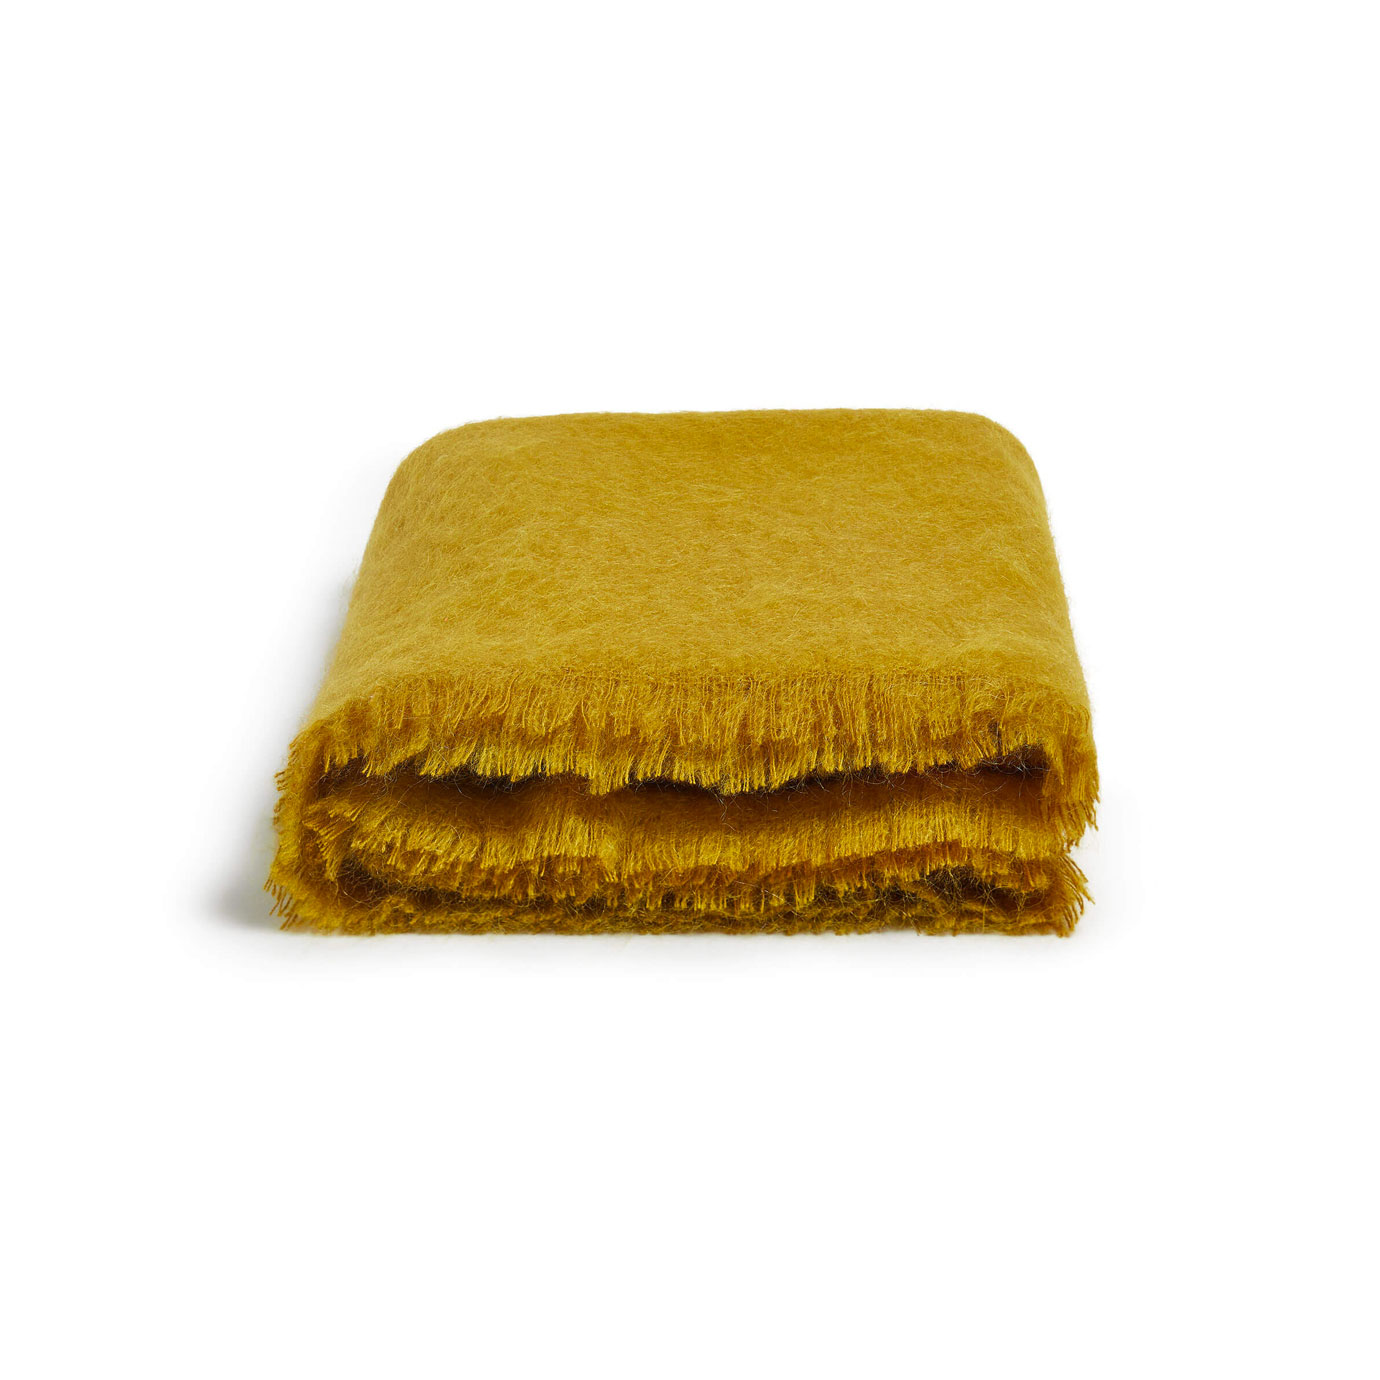 A mustard coloured blanket.